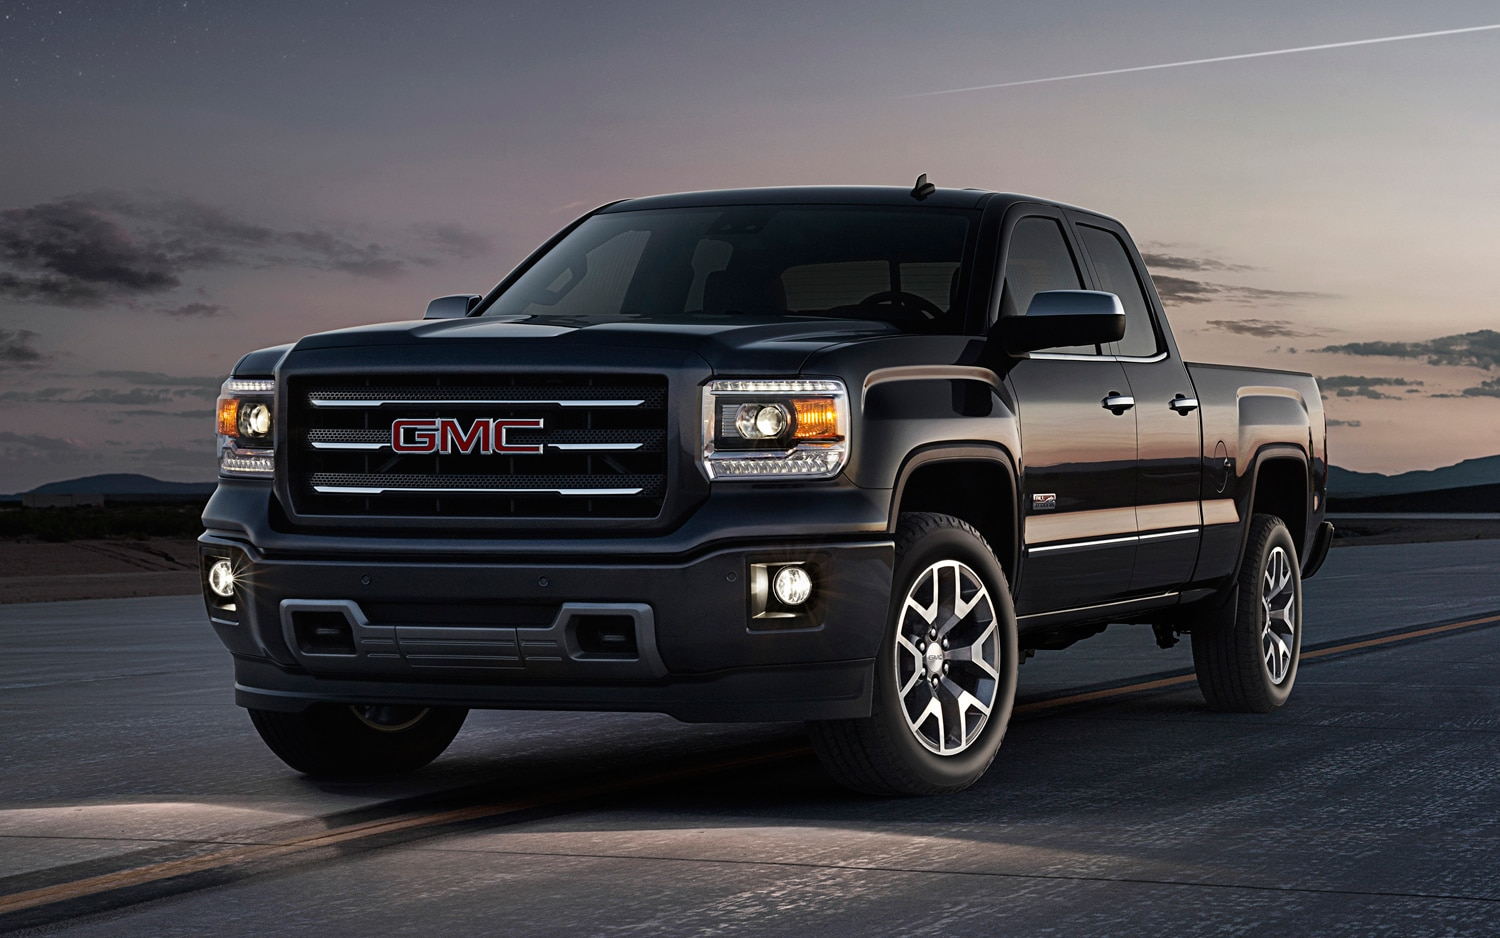 2014 GMC Sierra Front Three Quarter View